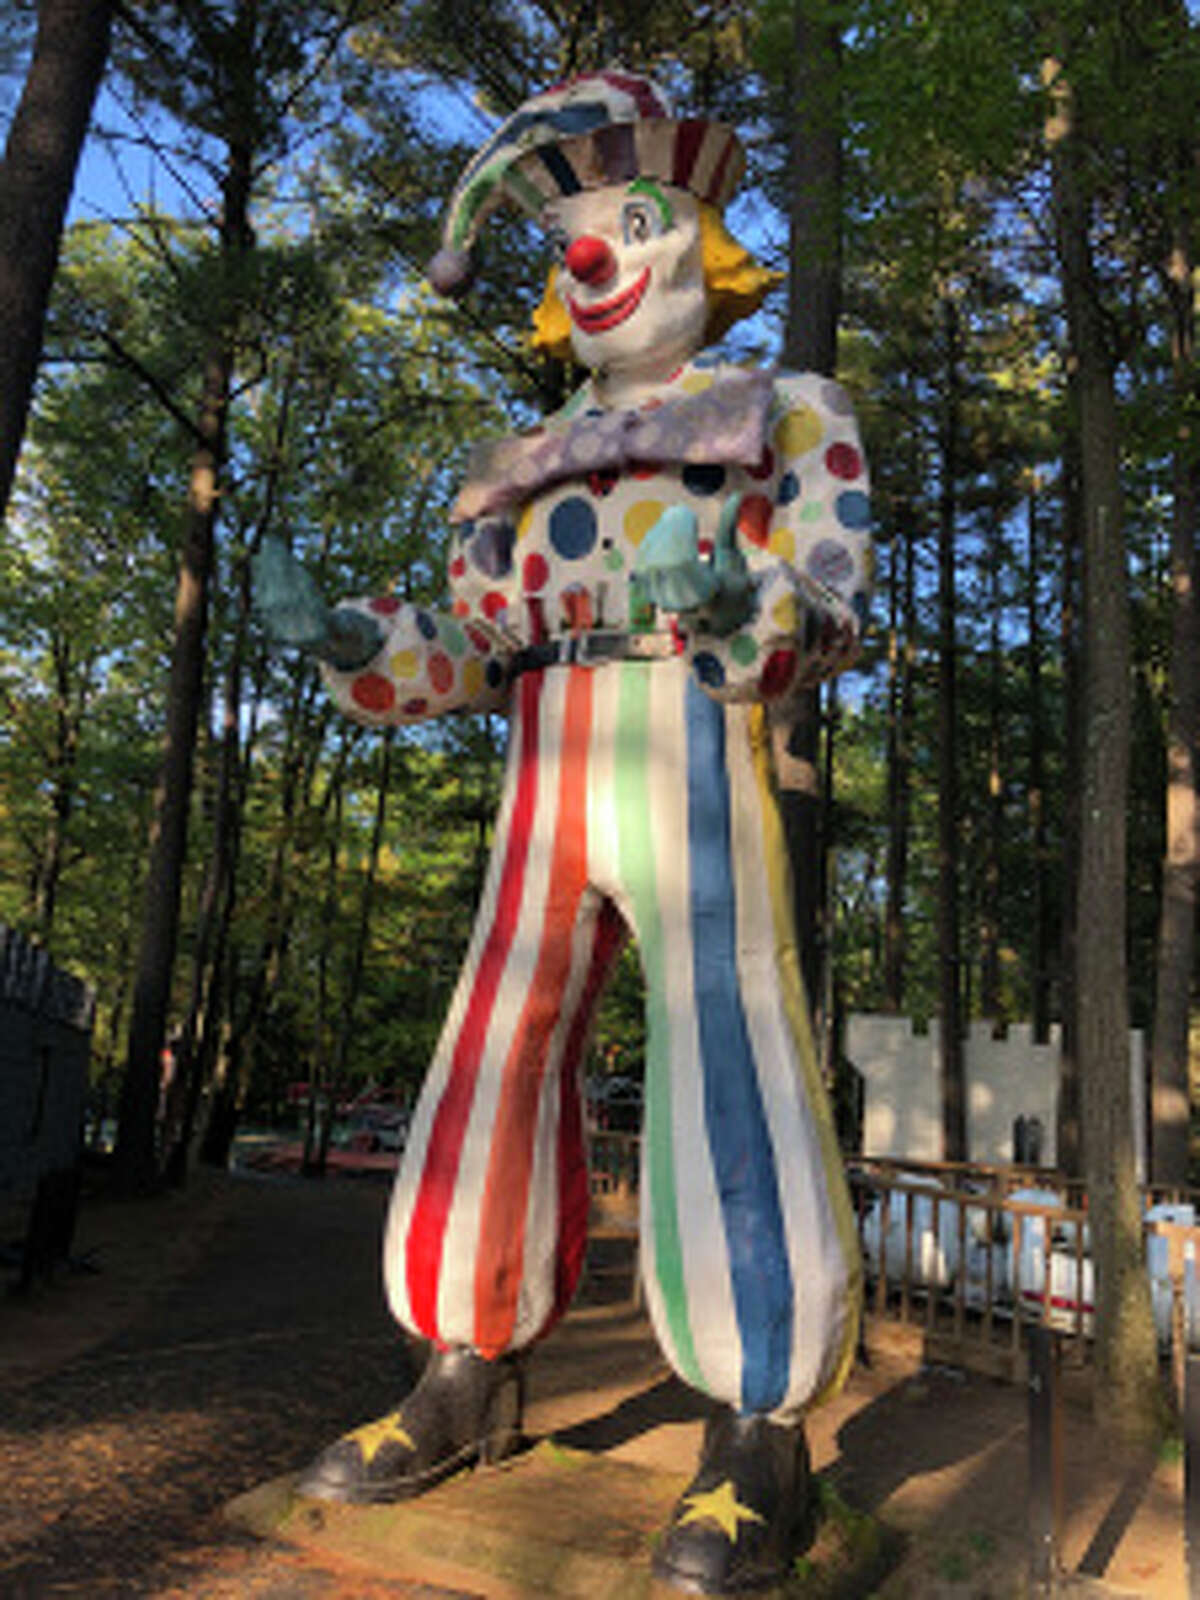 A statue of a clown is among the items for sale from Magic Forest in Lake George.